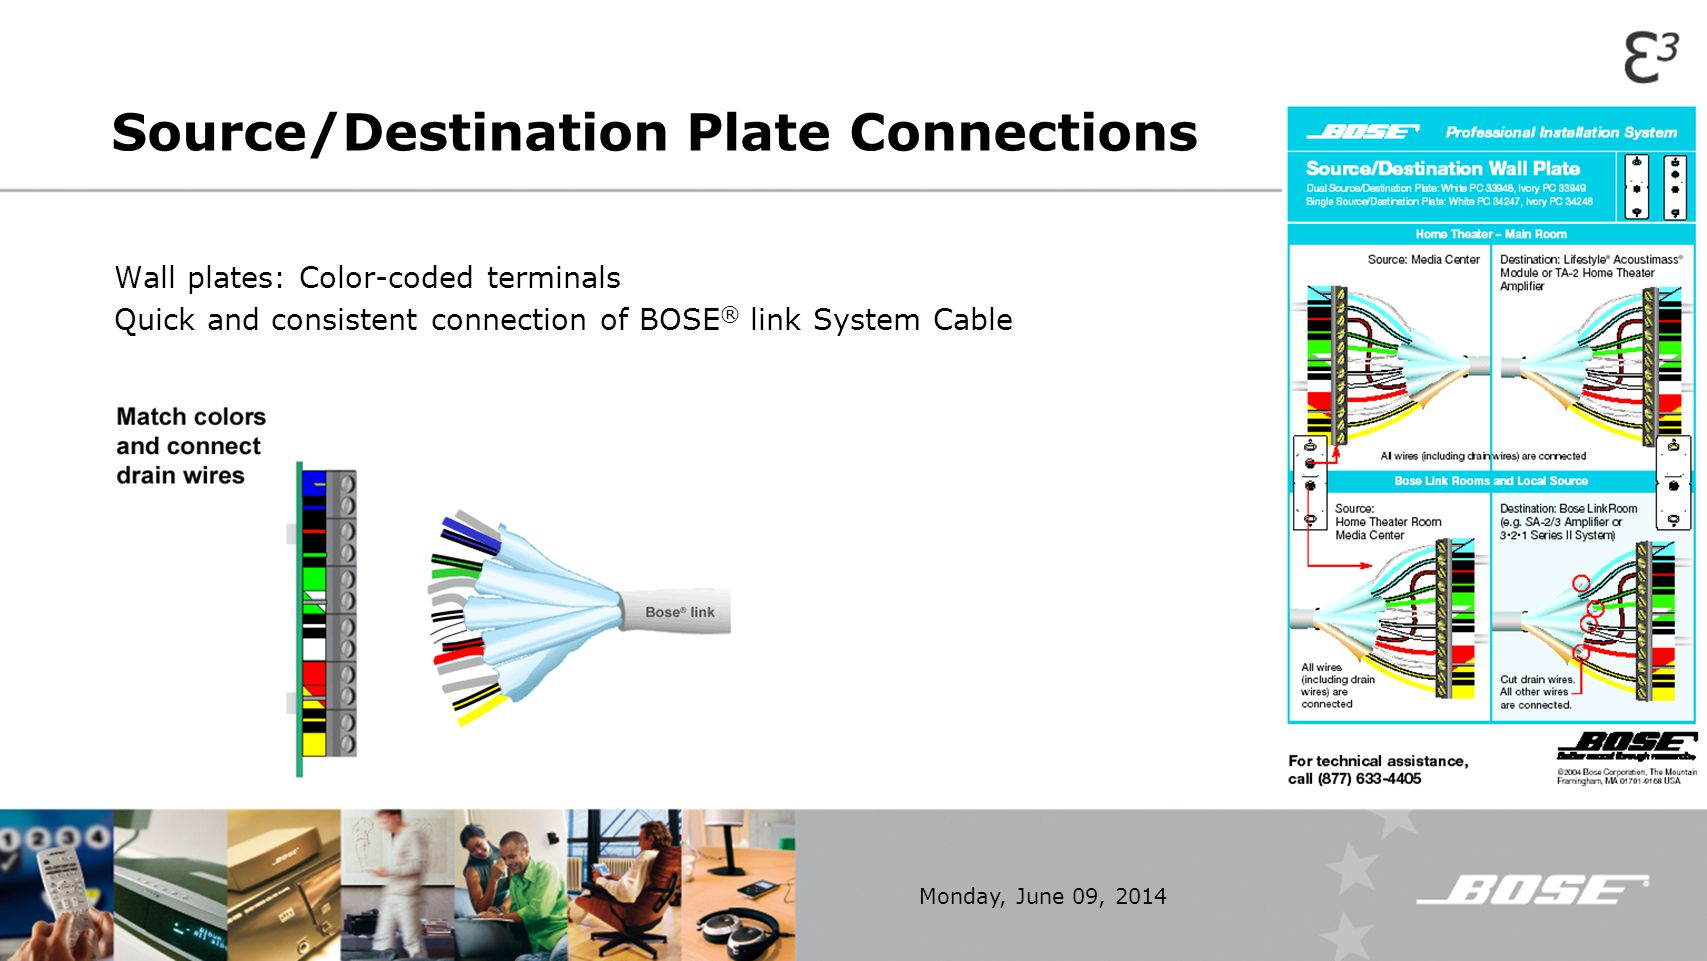 Bose Link Music Throughout Your Home Ppt Video Online Download Theater Wiring Guide 25 Source Destination Plate Connections